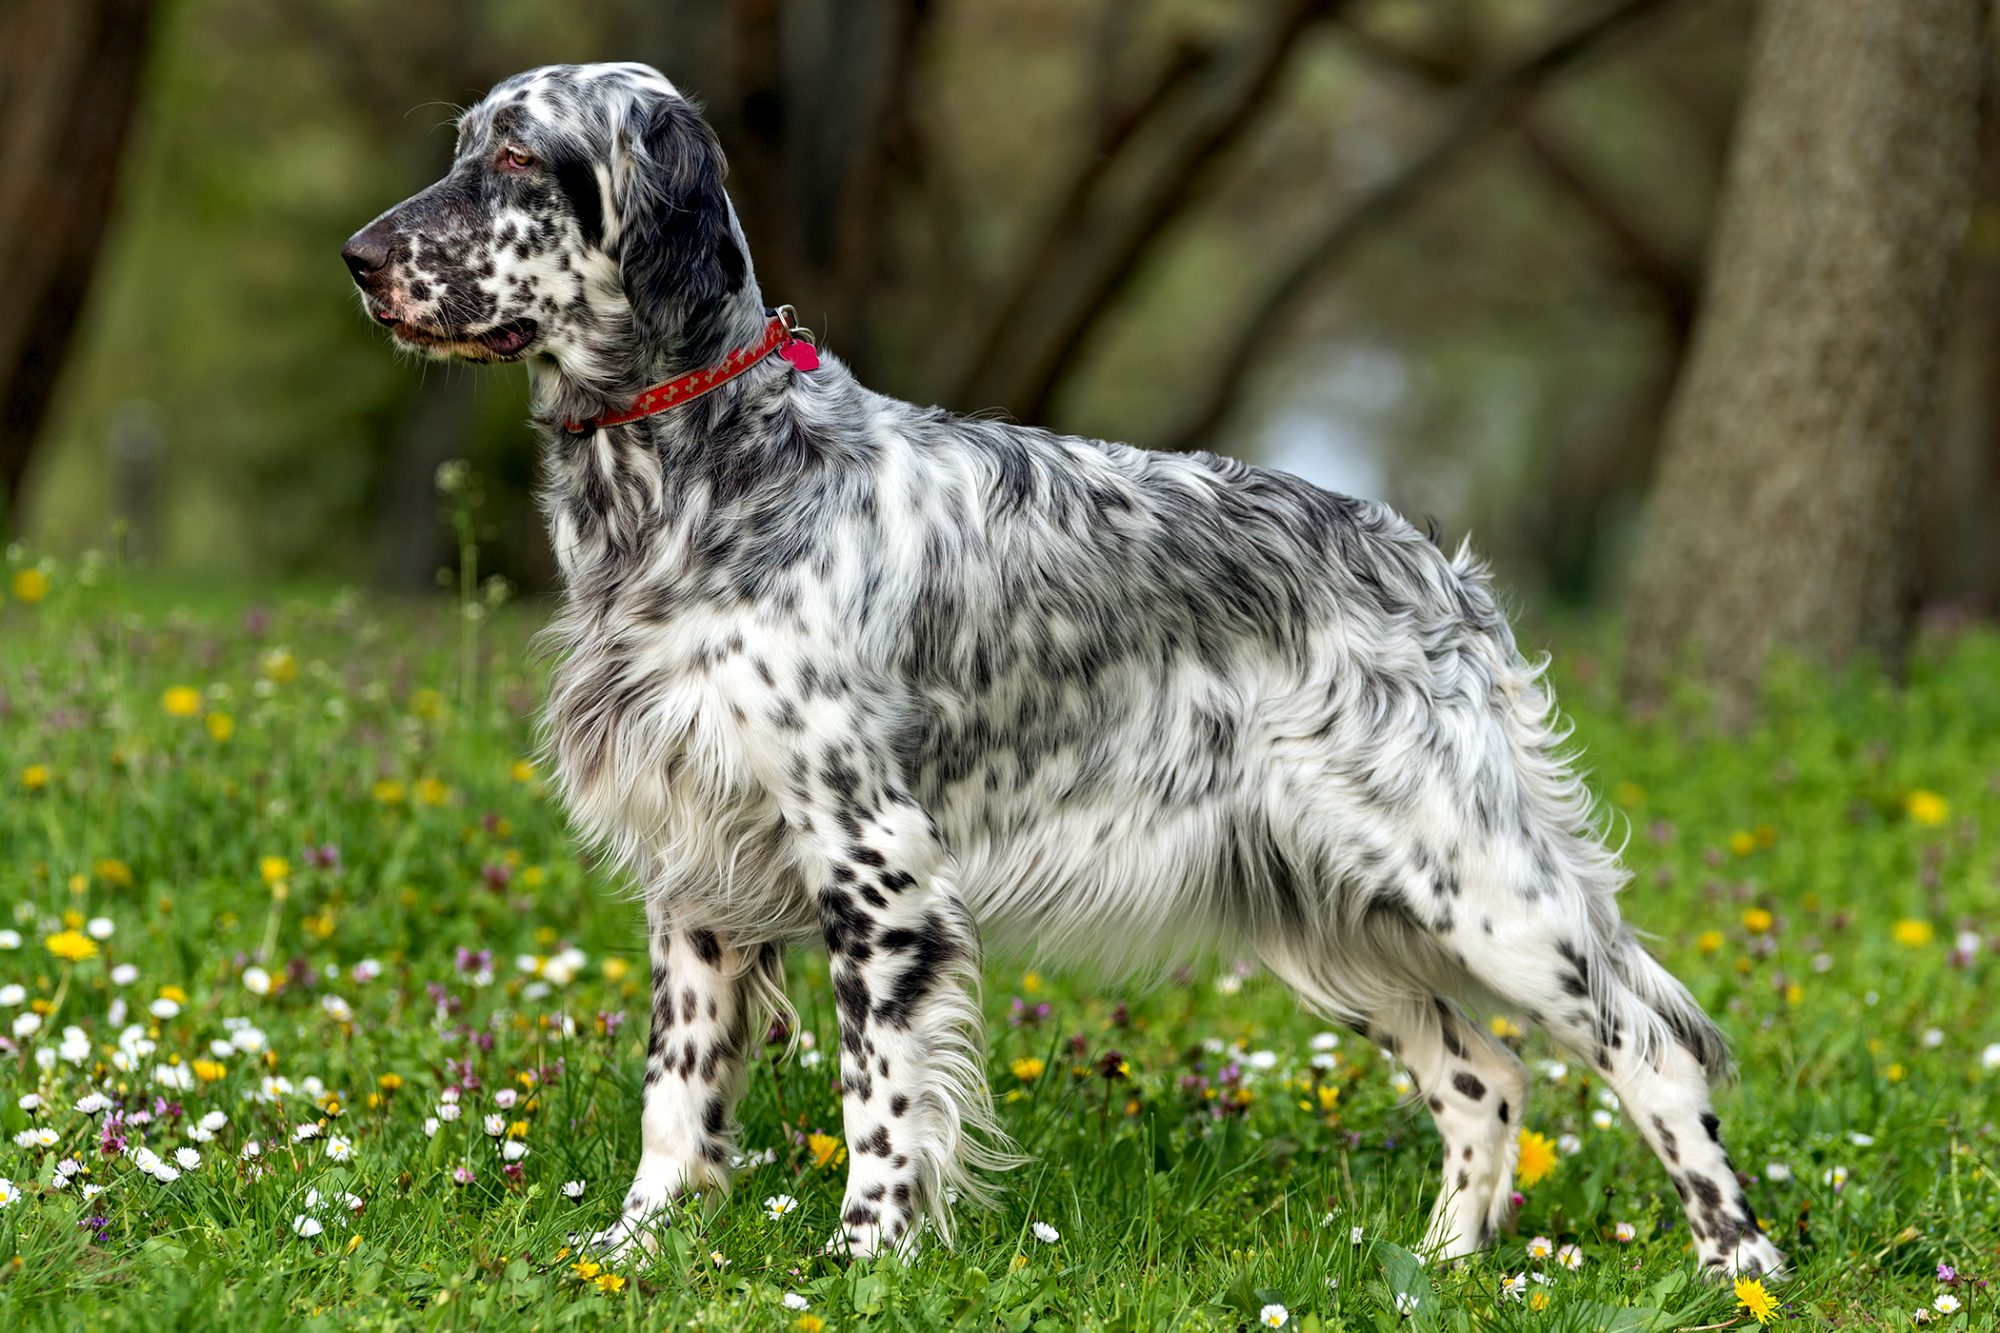 Black and white spotted English Setter stands in flower-covered grass